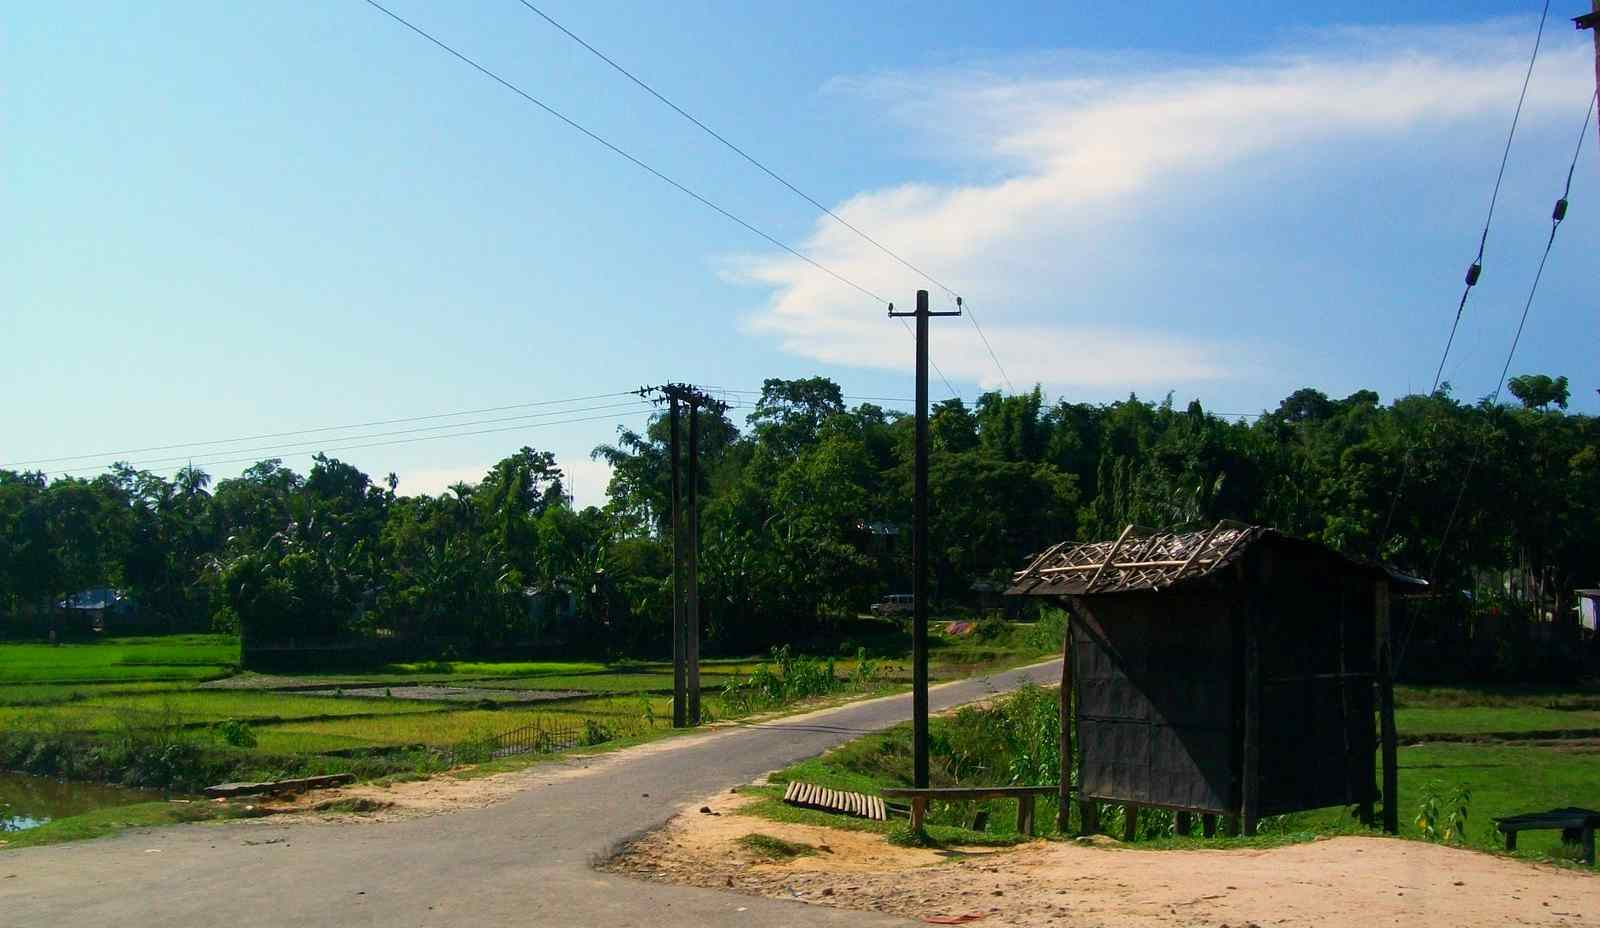 Places to visit in Hailakandi